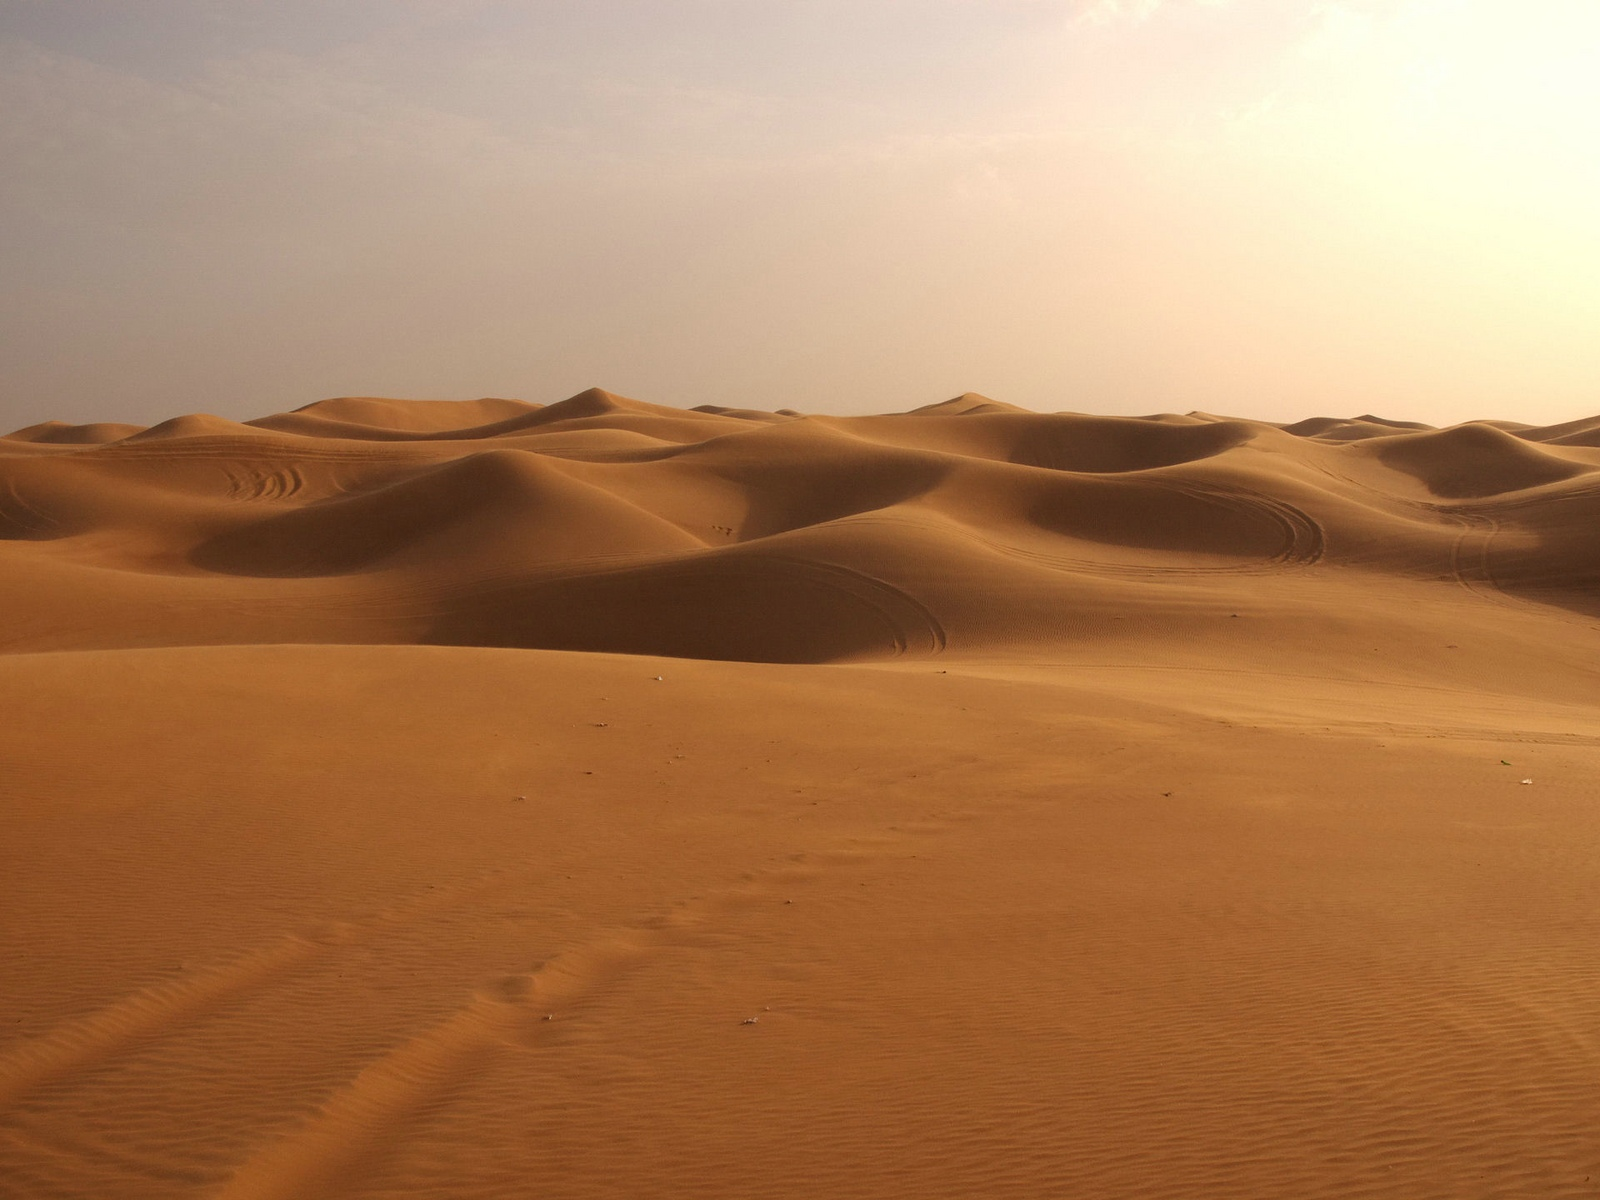 Sahara Landscape Wallpaper